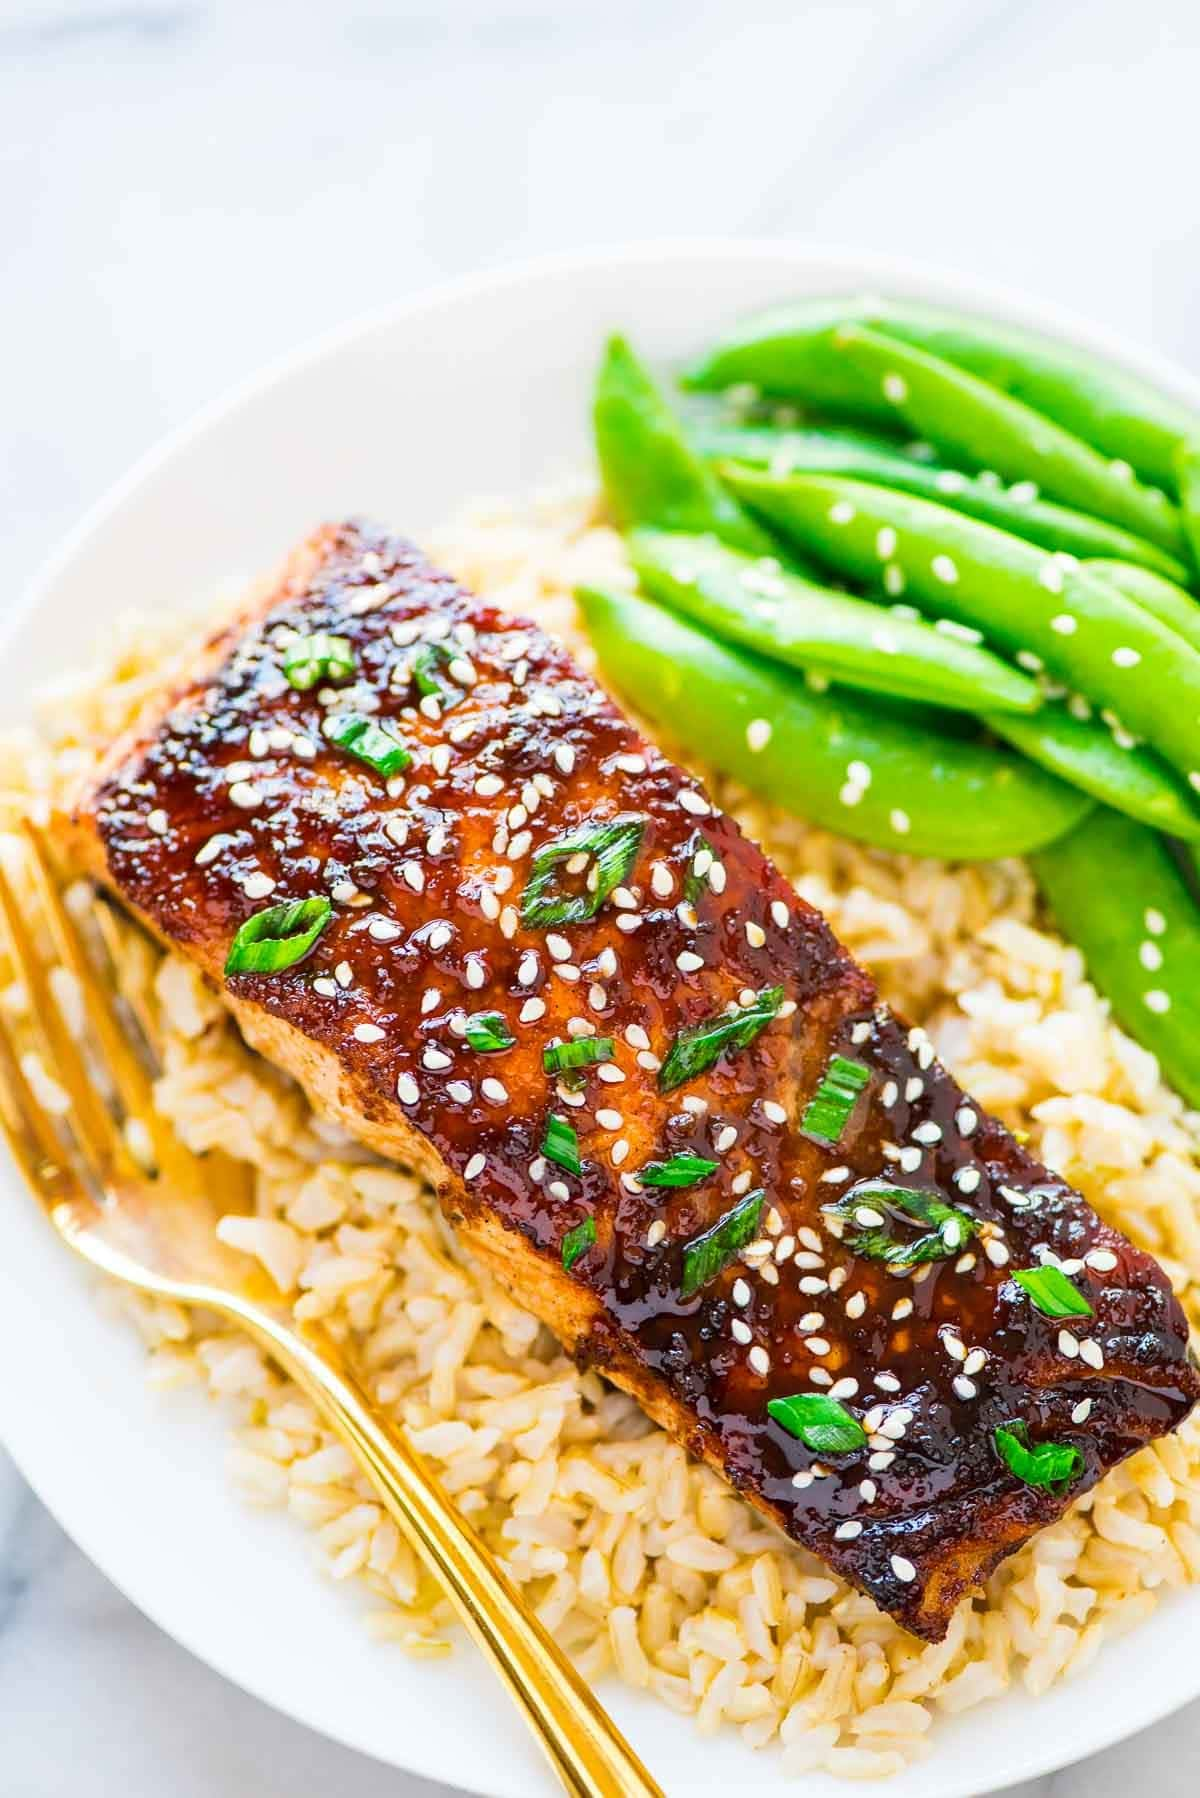 Soy Ginger Salmon – a quick and easy honey soy ginger glazed salmon, topped with spring onions. Simple and DELICIOUS! Recipe at wellplated.com | @wellplated